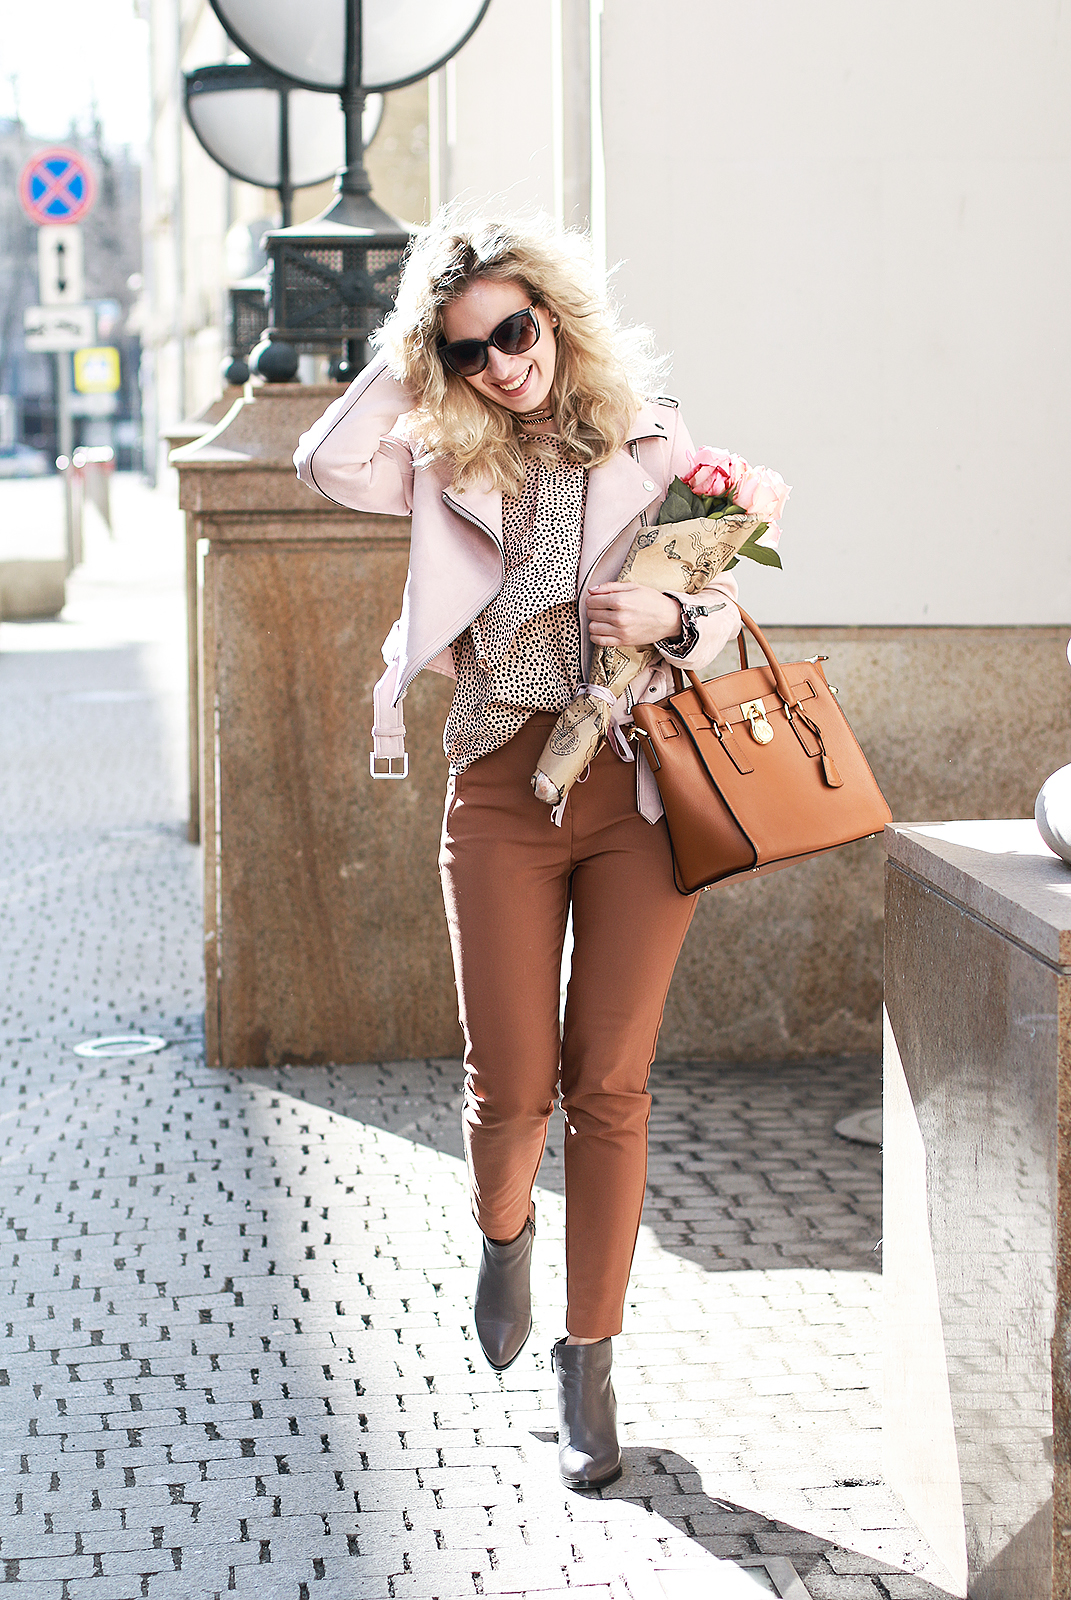 Margarita_Maslova_Ritalifestyle_Fashion_blogger_Moscow_MK_bag_portal_shoes_Zara_pink_jacket_